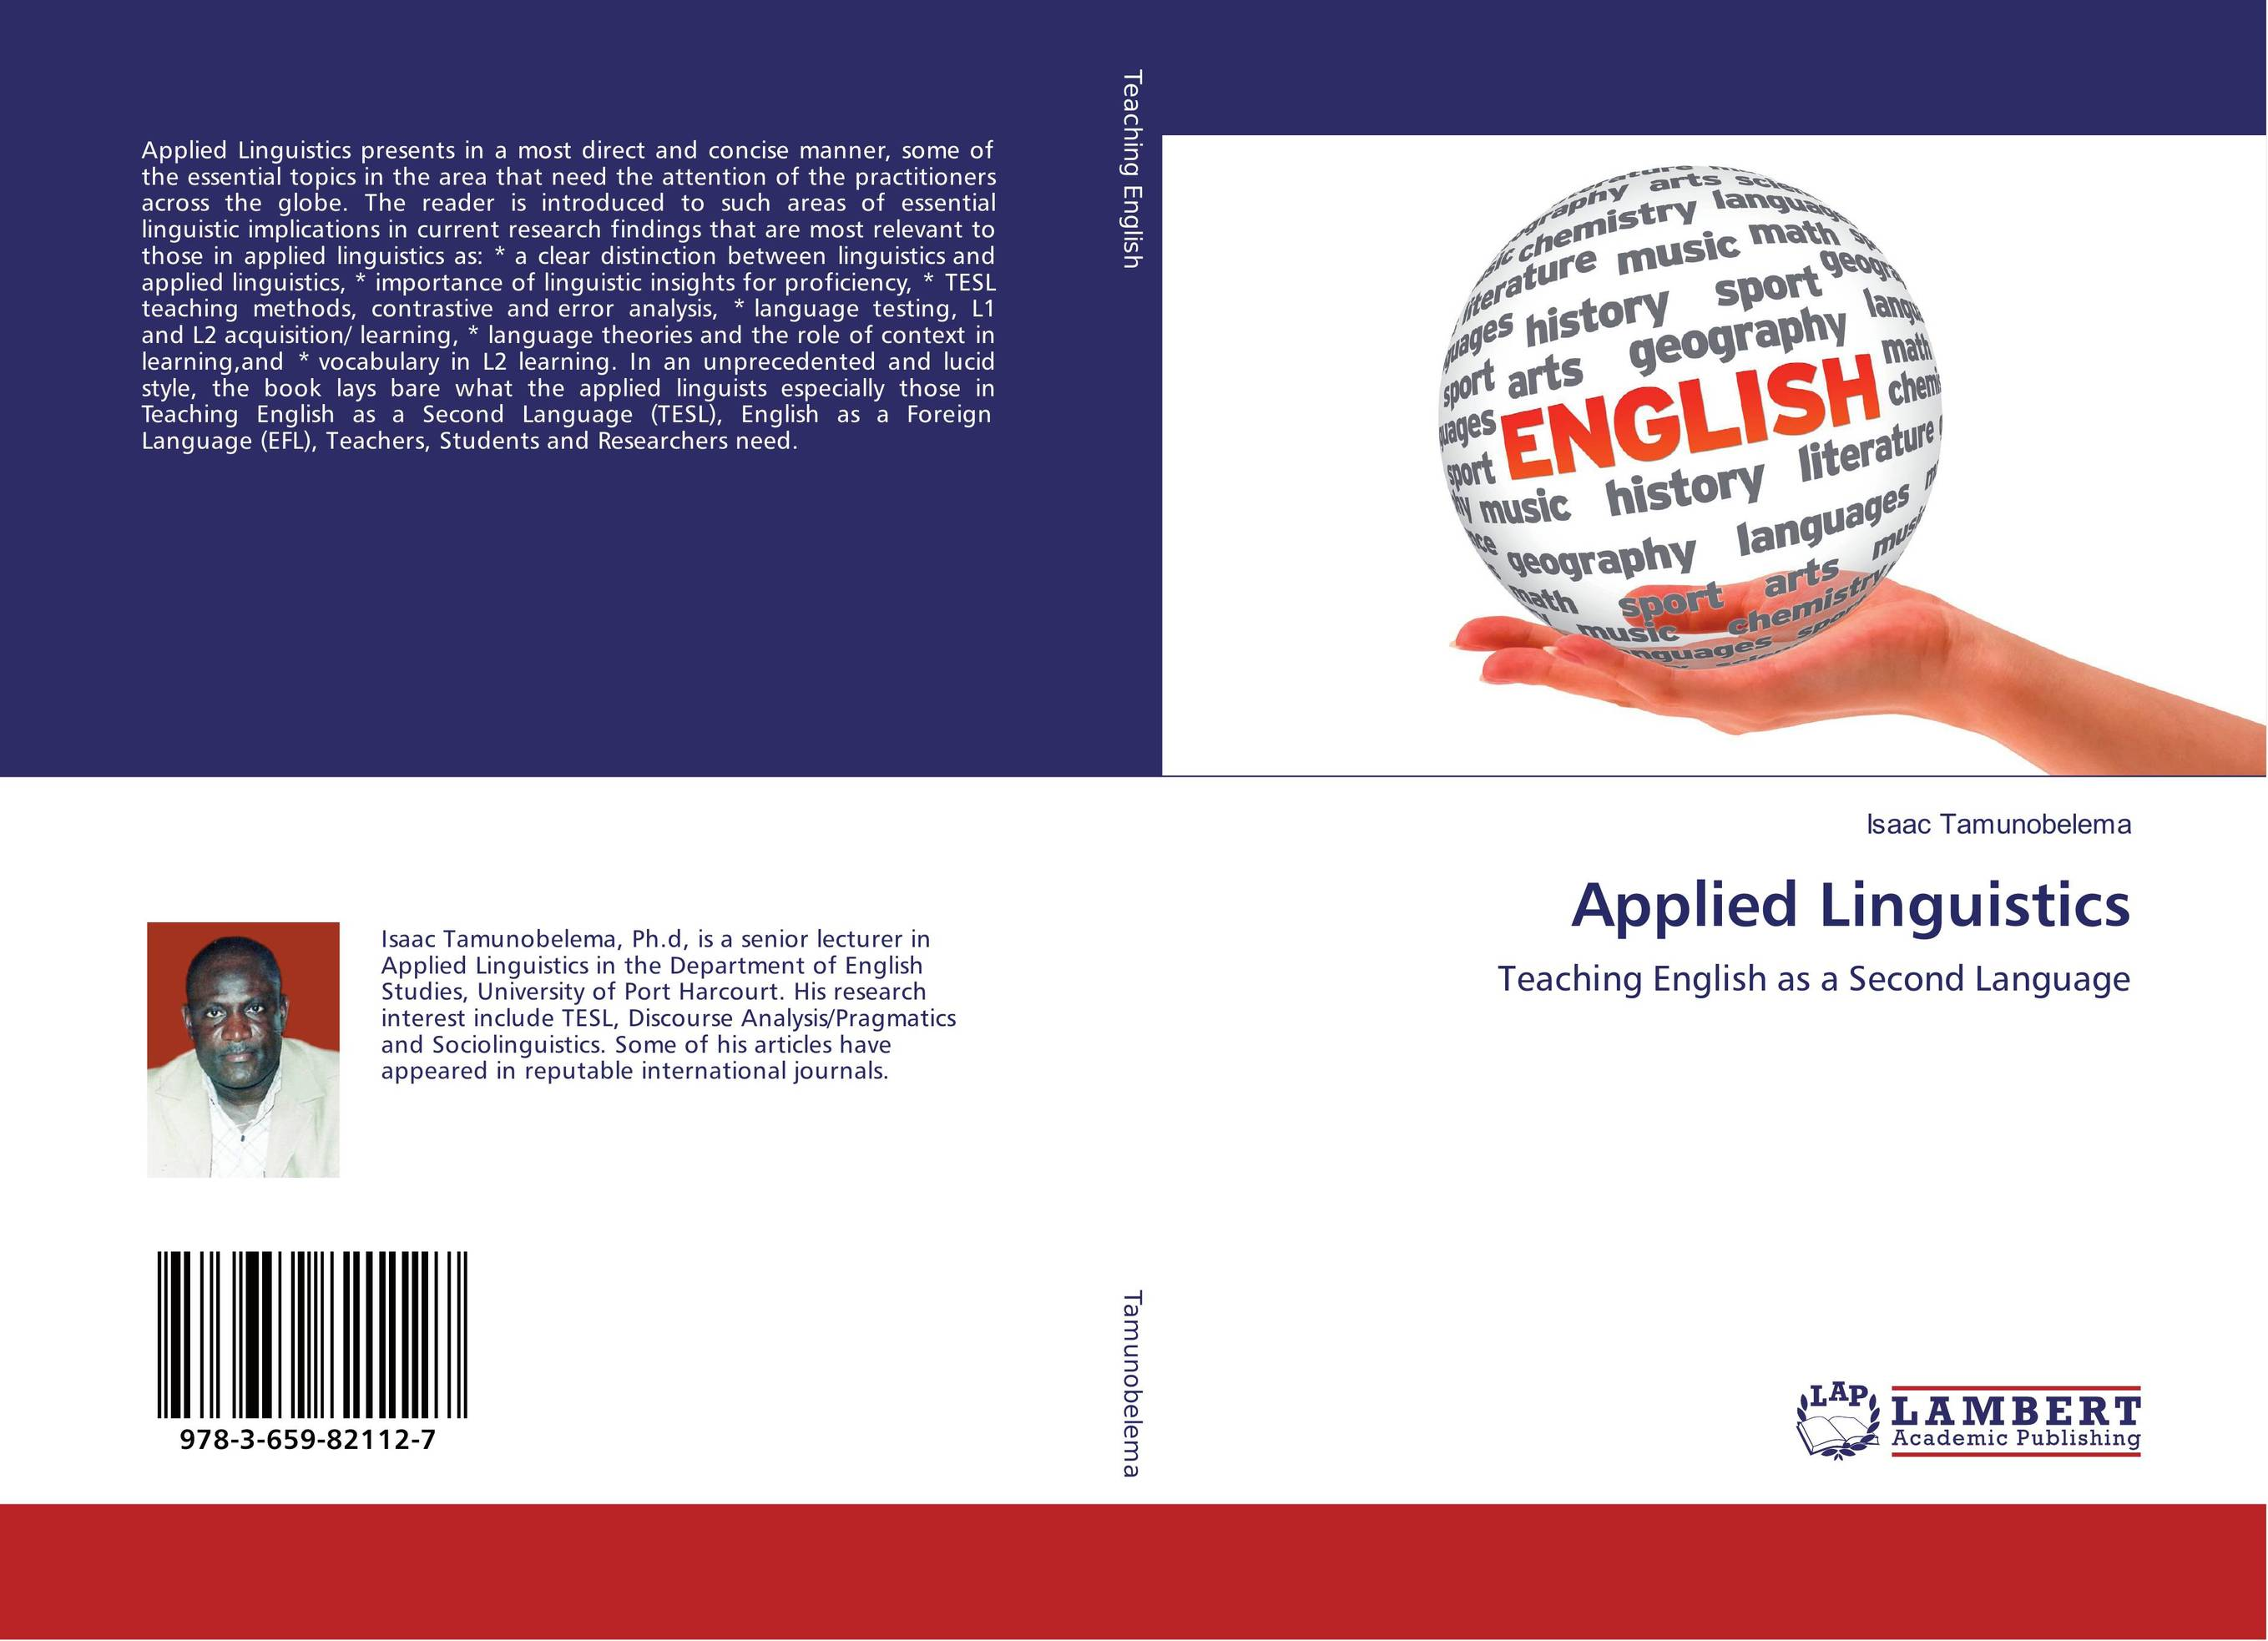 Applied Linguistics the role of ict in the teaching of english as a foreign language efl